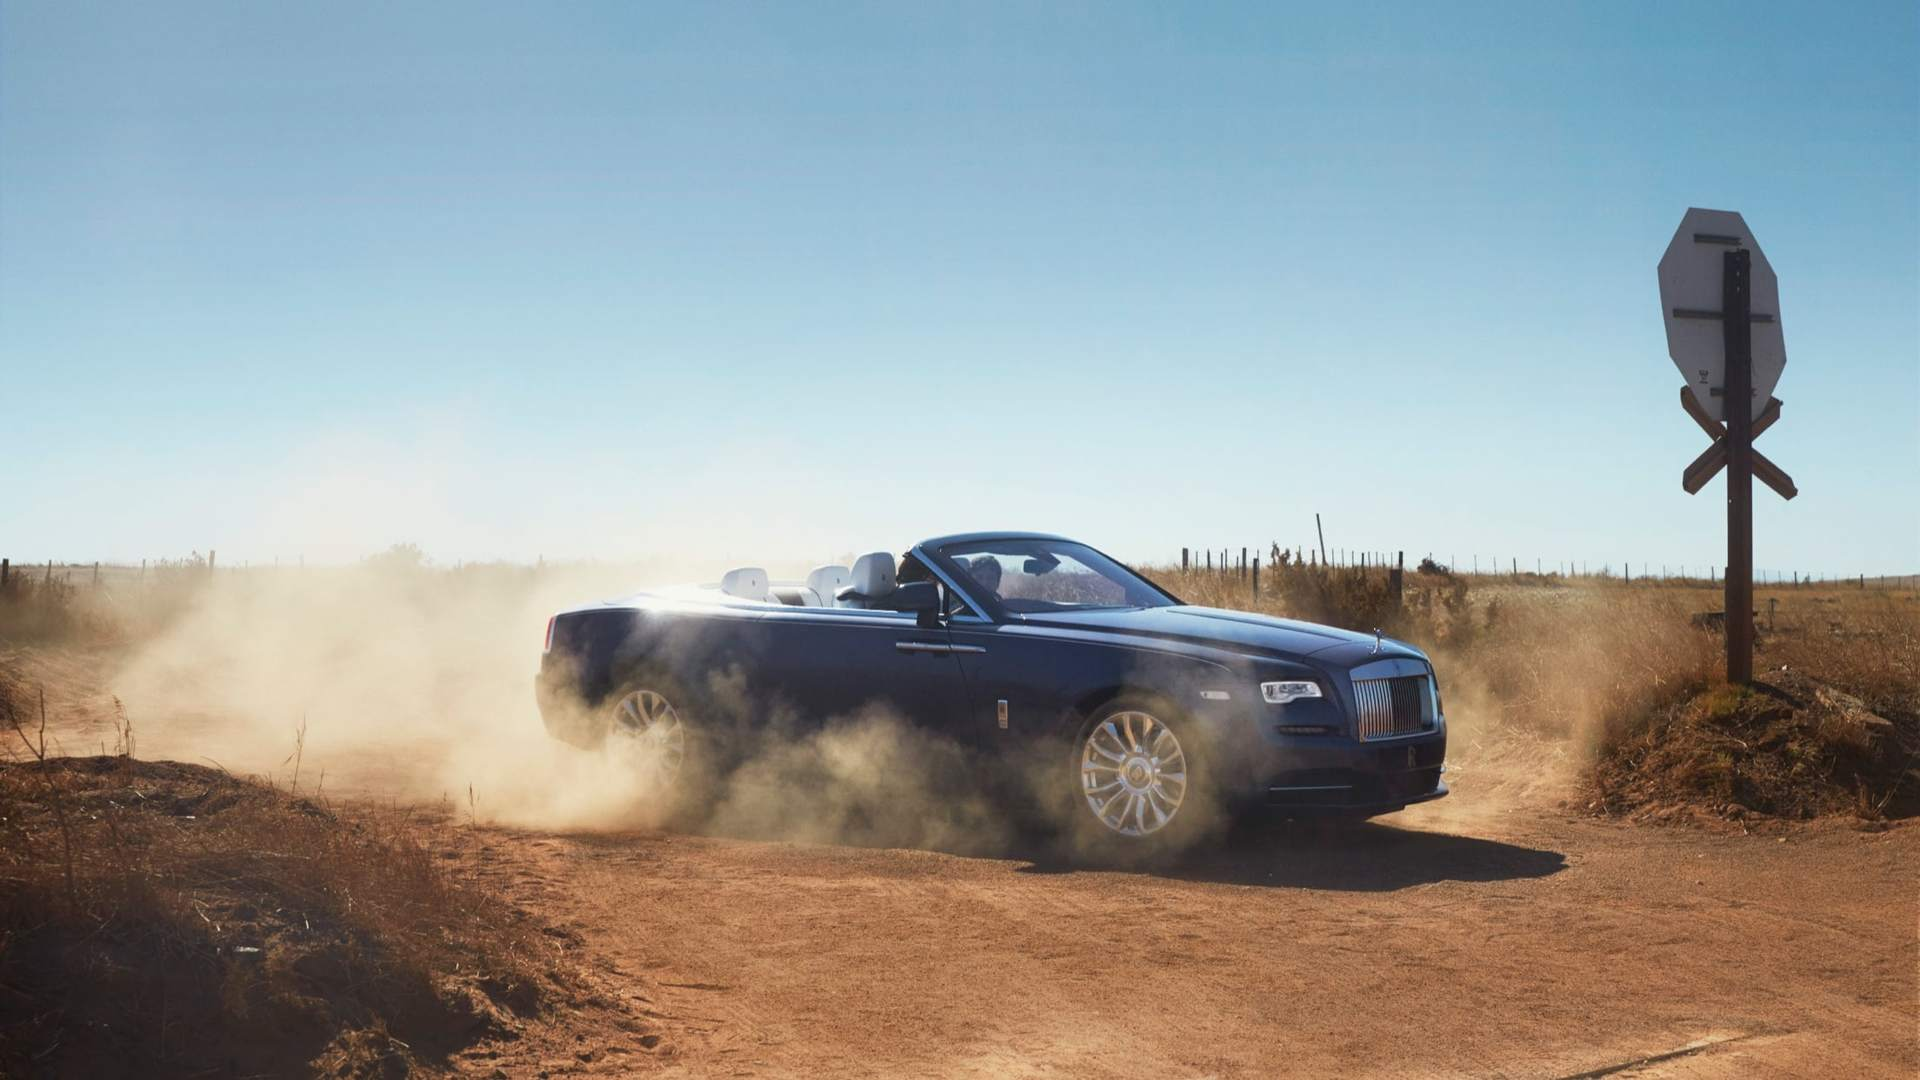 Side view of Rolls-Royce Dawn on a dirt road